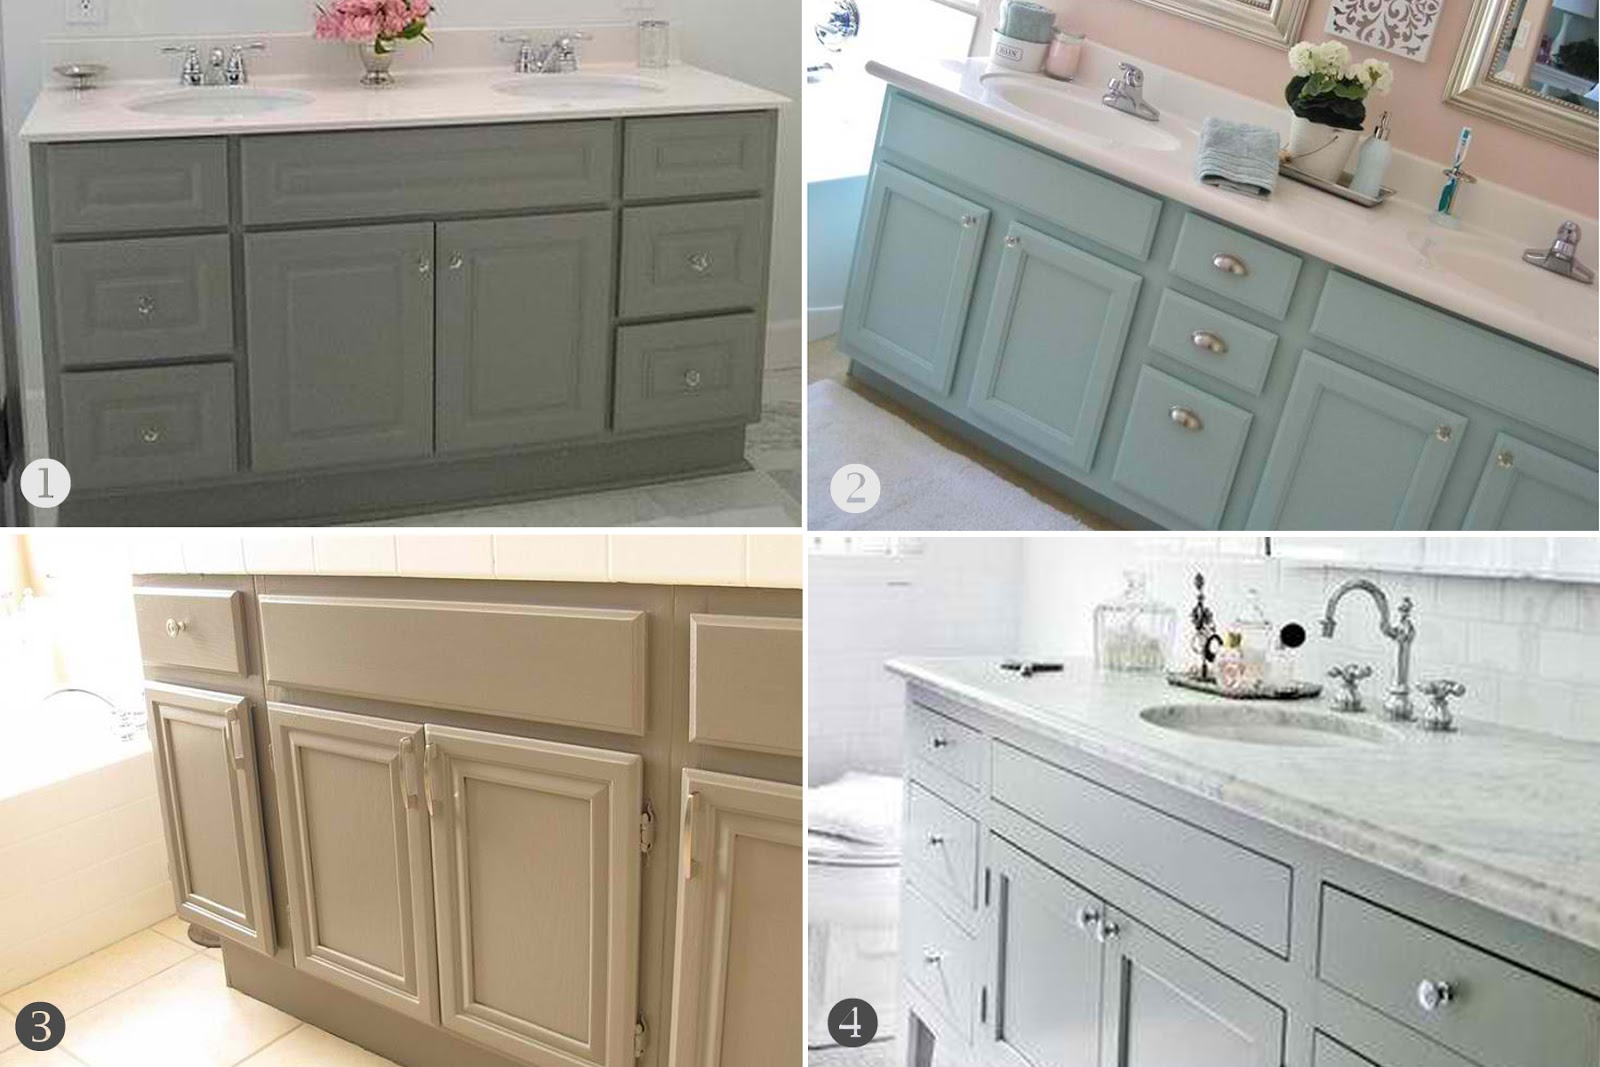 Inspired honey bee home bathroom cabinets upgrade - Bathroom paint colors with oak cabinets ...